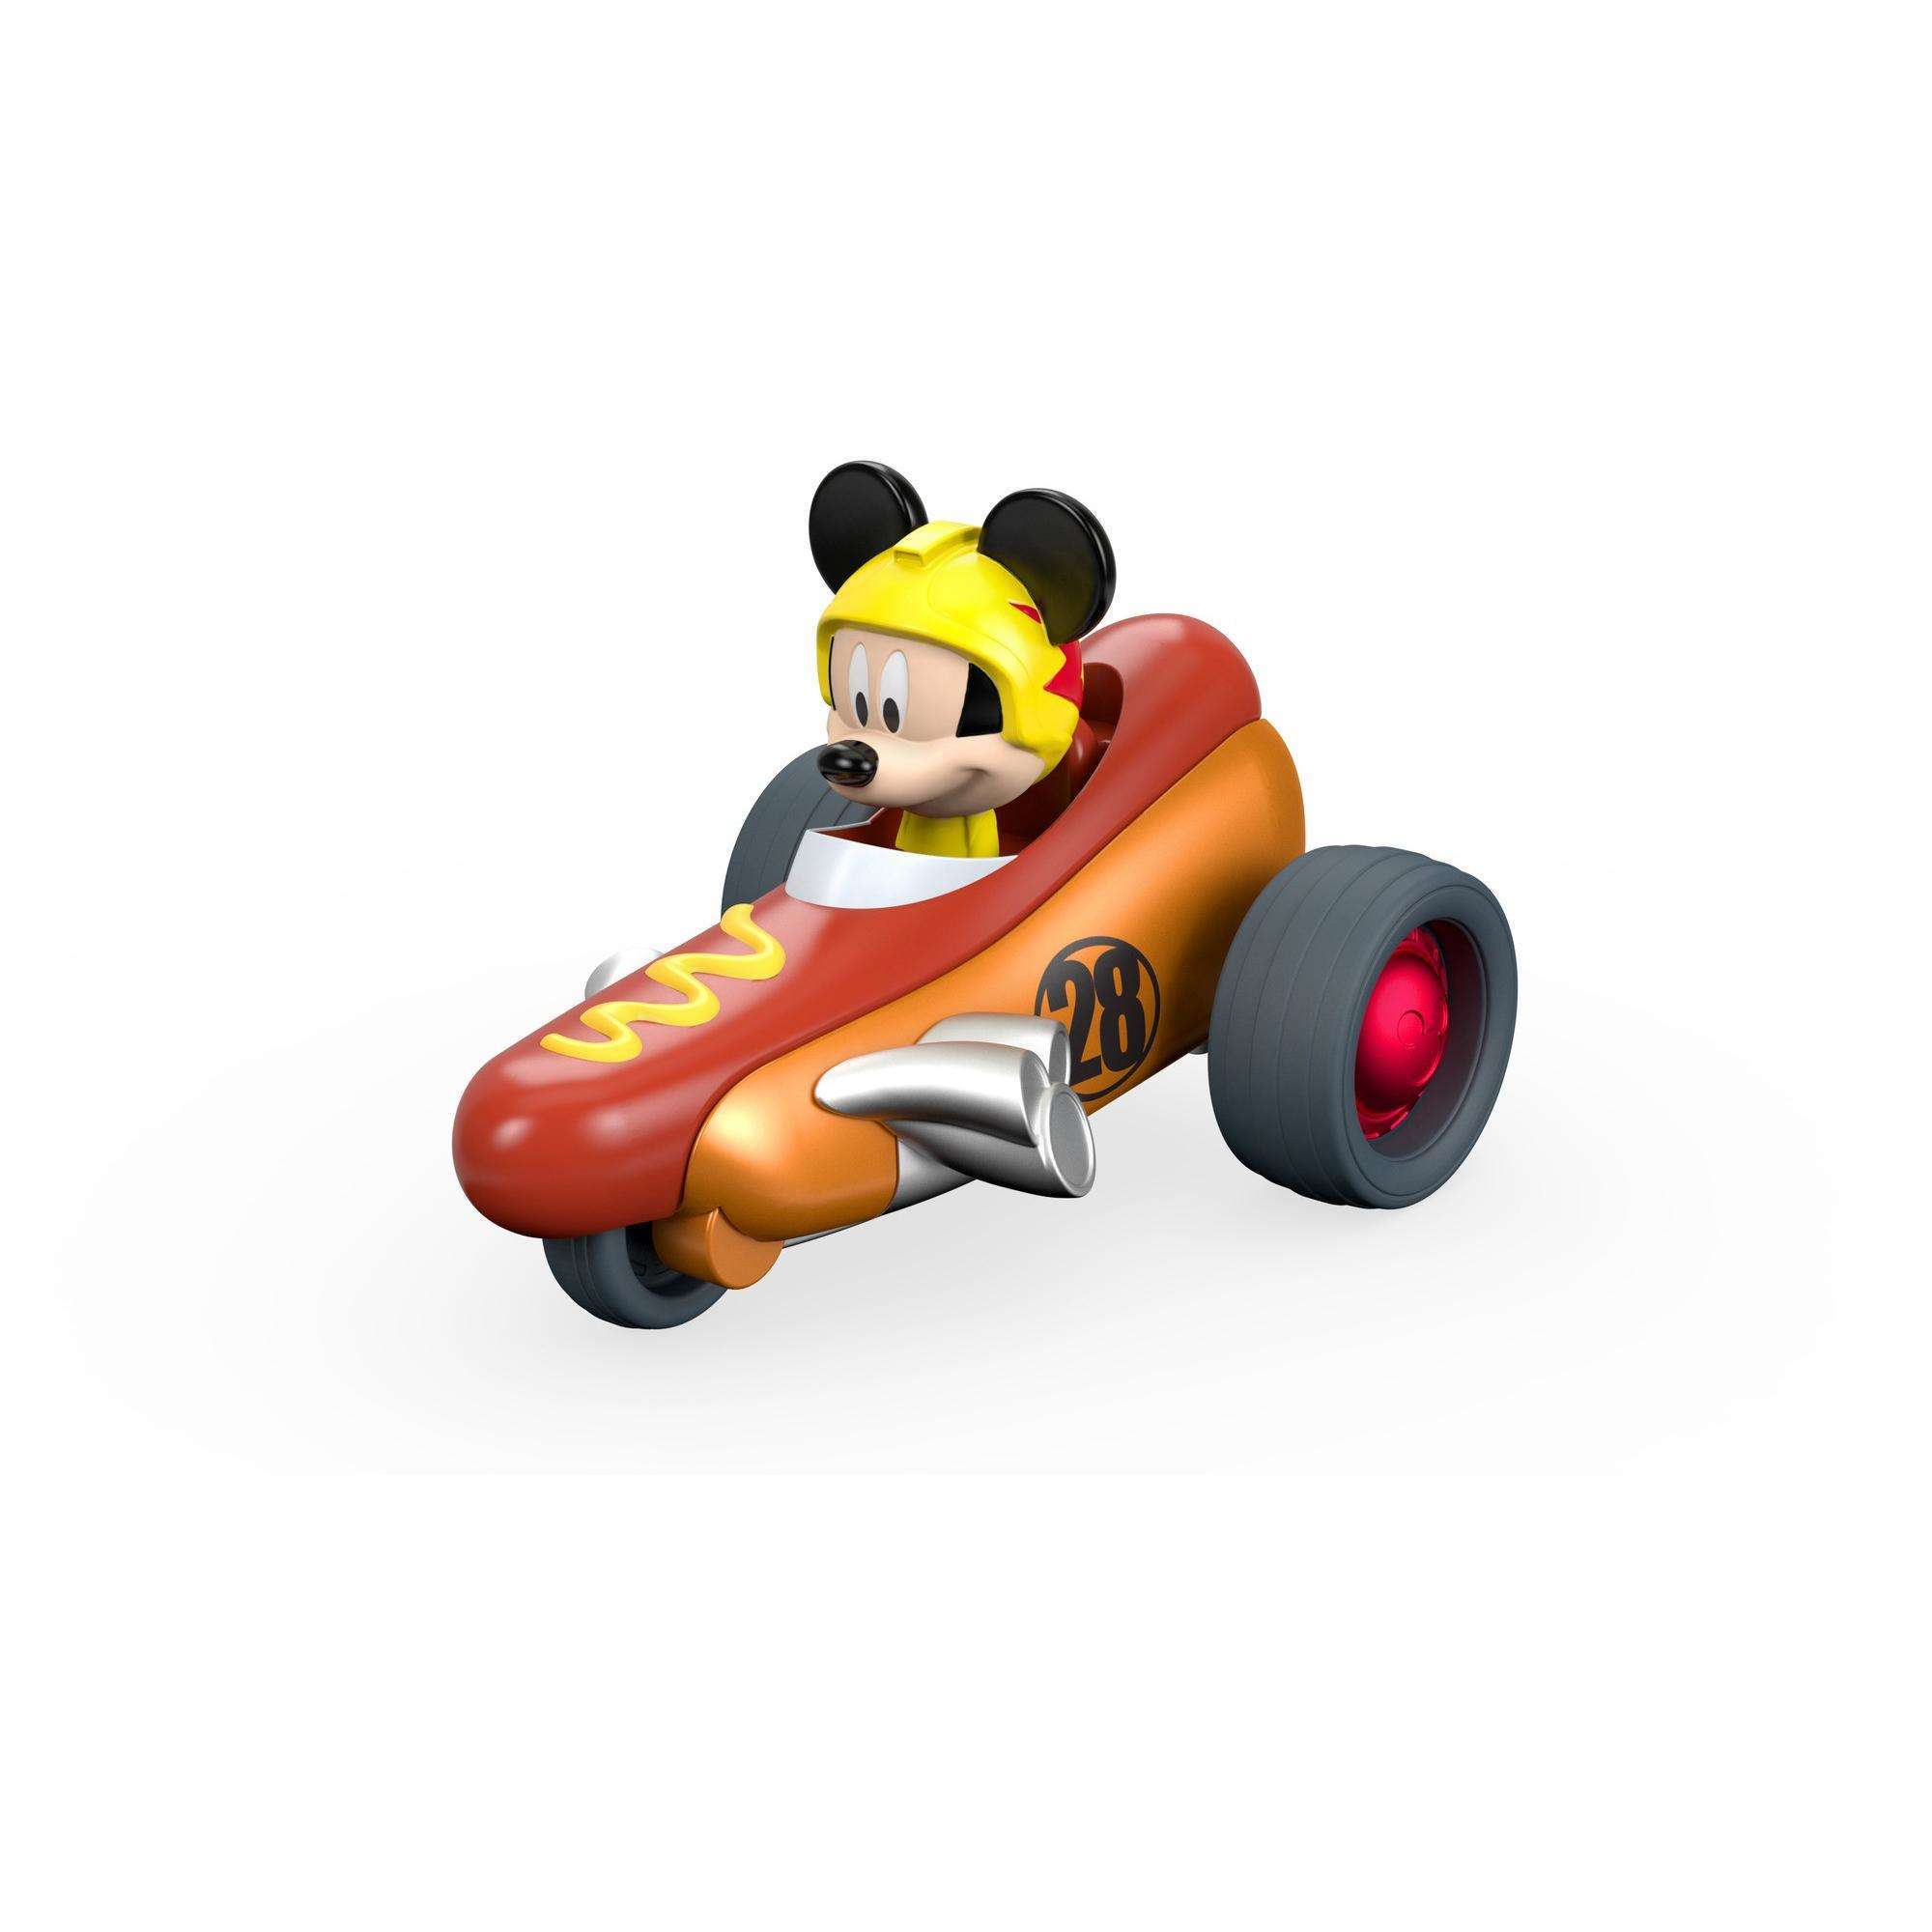 Disney Mickey Mouse Clubhouse Pull 'N Go Hot Dogster by Mattel